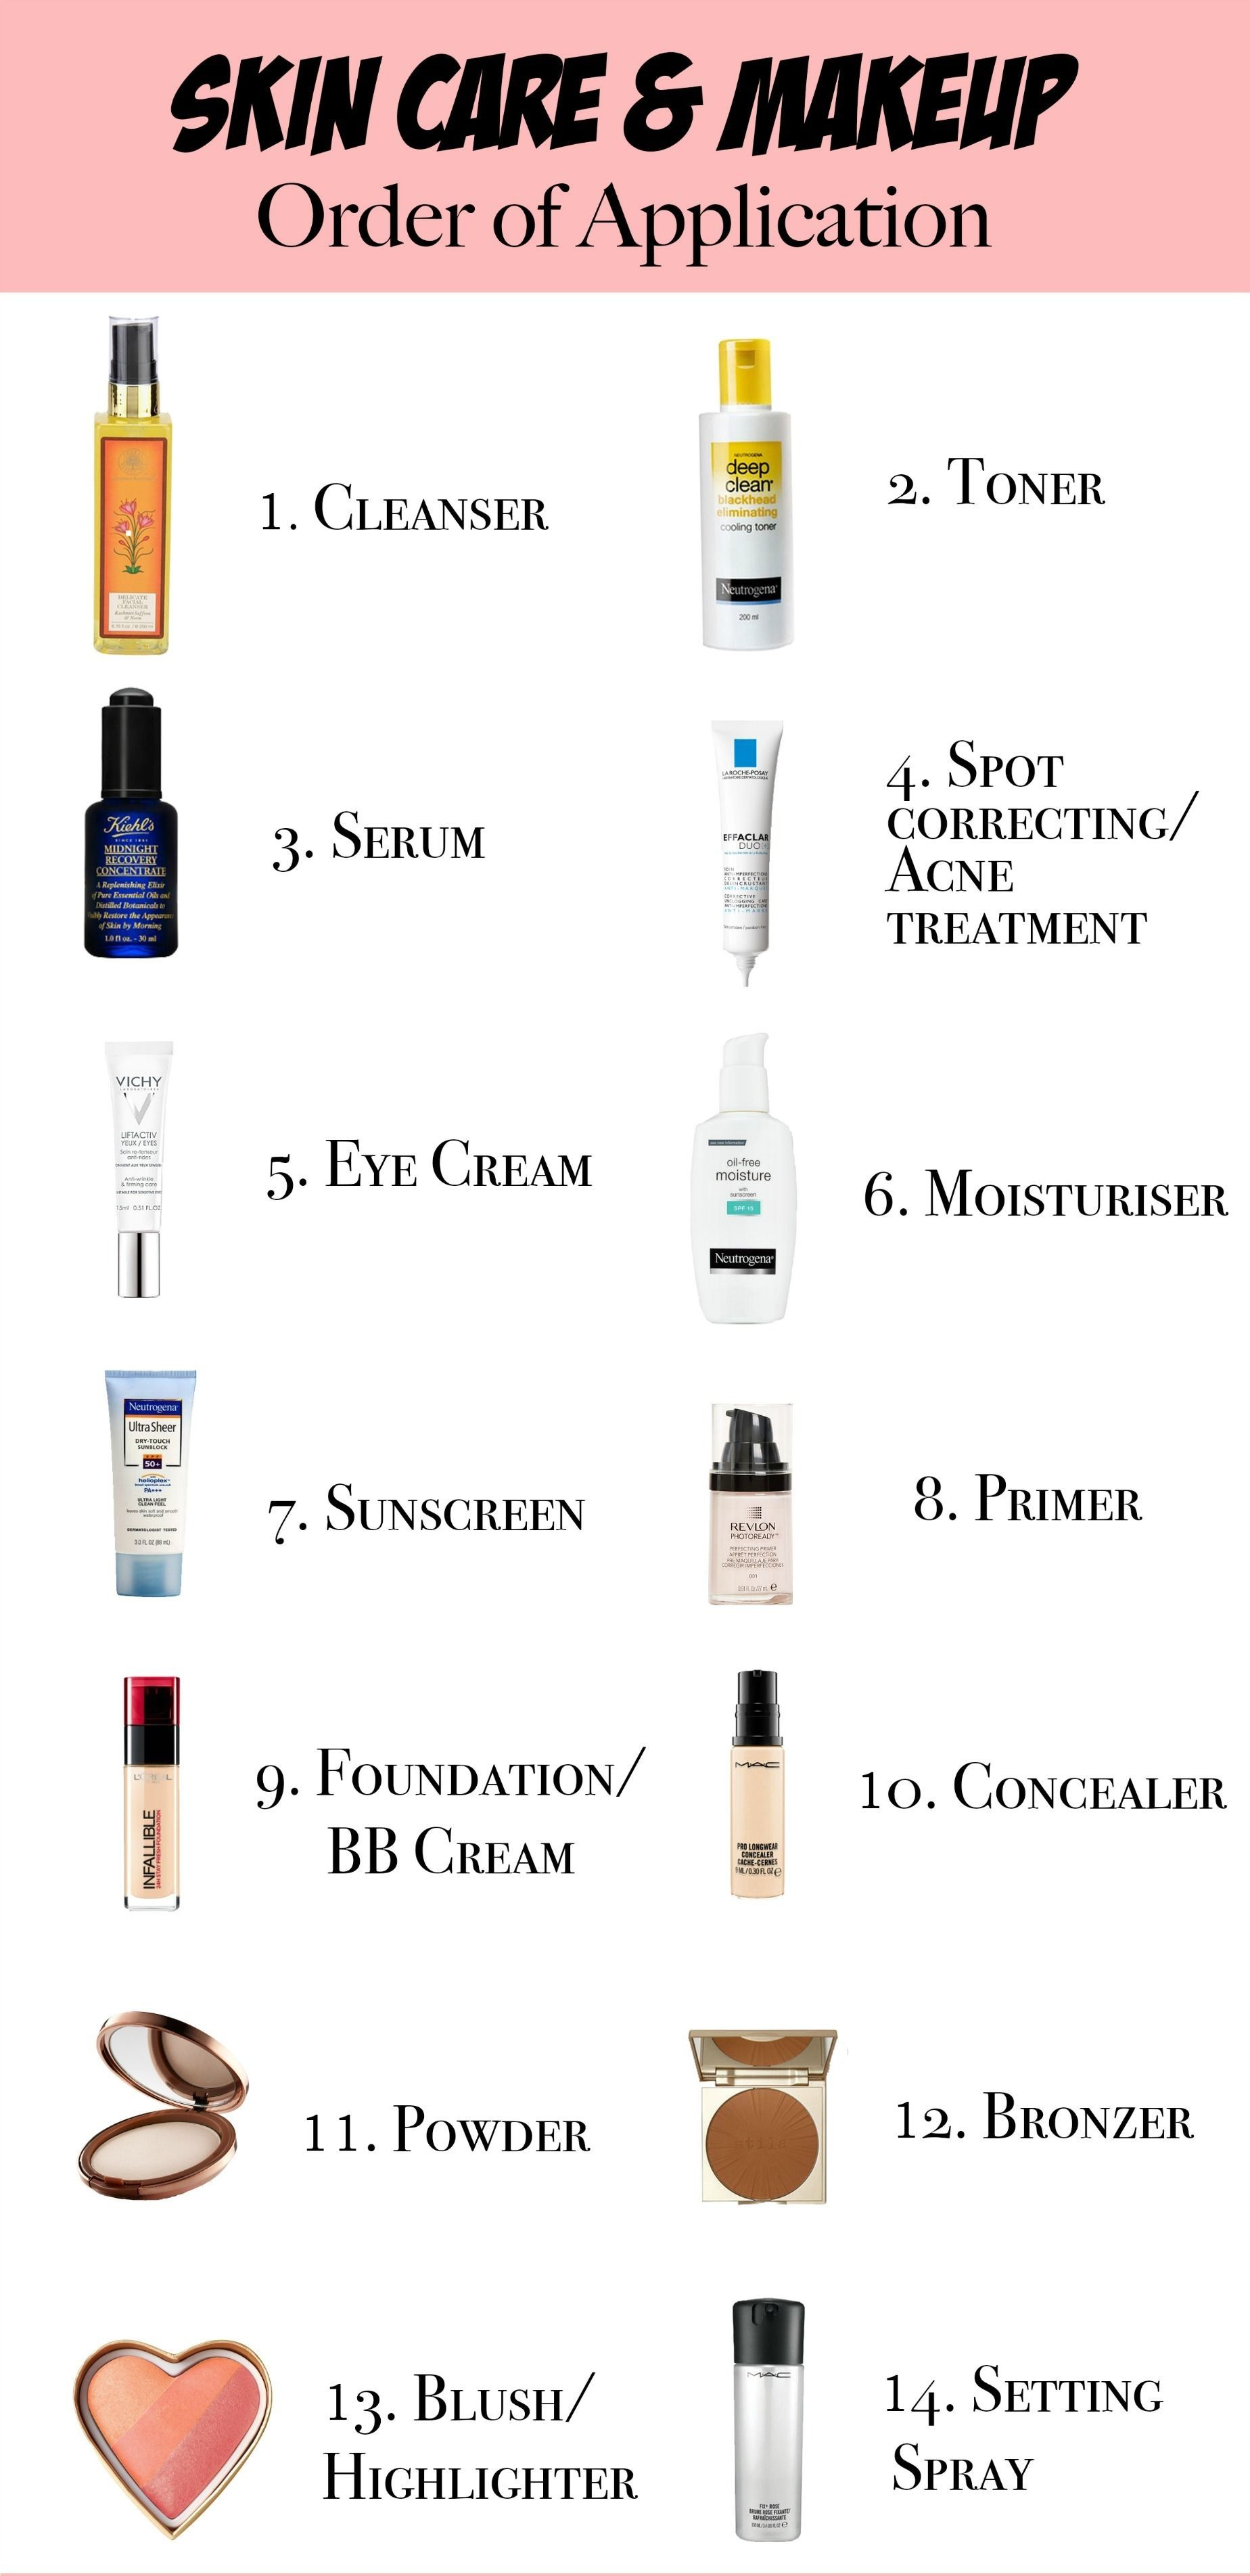 How To Apply Makeup In The Correct Order In 2020 Dry Sensitive Skin Lotion For Dry Skin Dry Skin Treatment